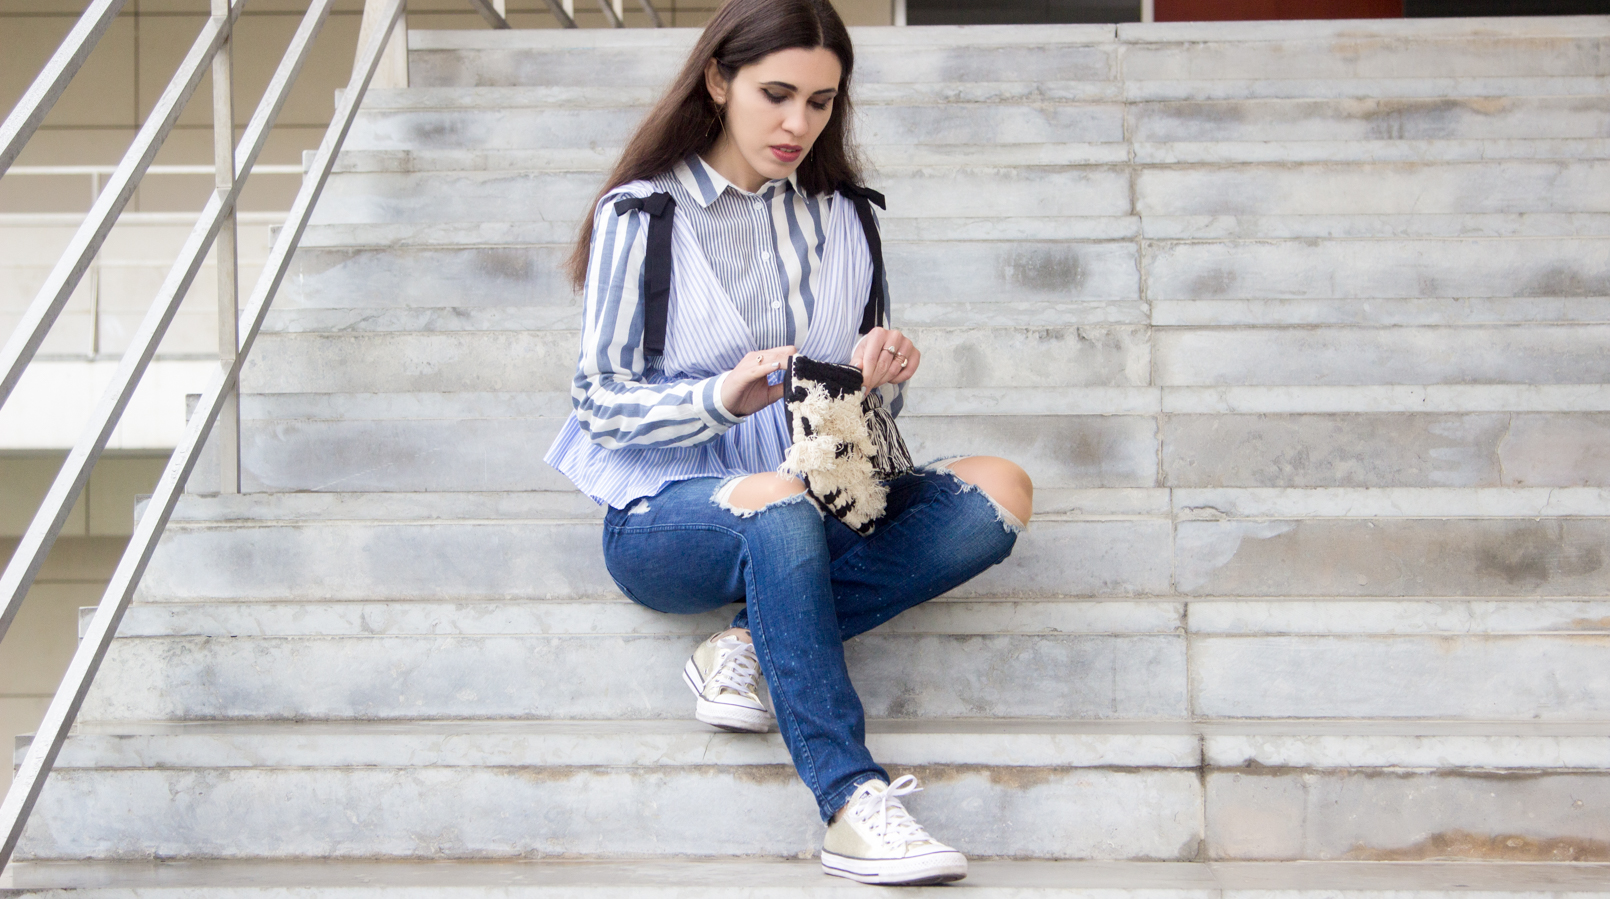 Le Fashionaire Delete those who don't risk anything for you zara black bow white blue stripes top gold converse all stars black white craft sfera clutch gold long hm earrings 7707F EN